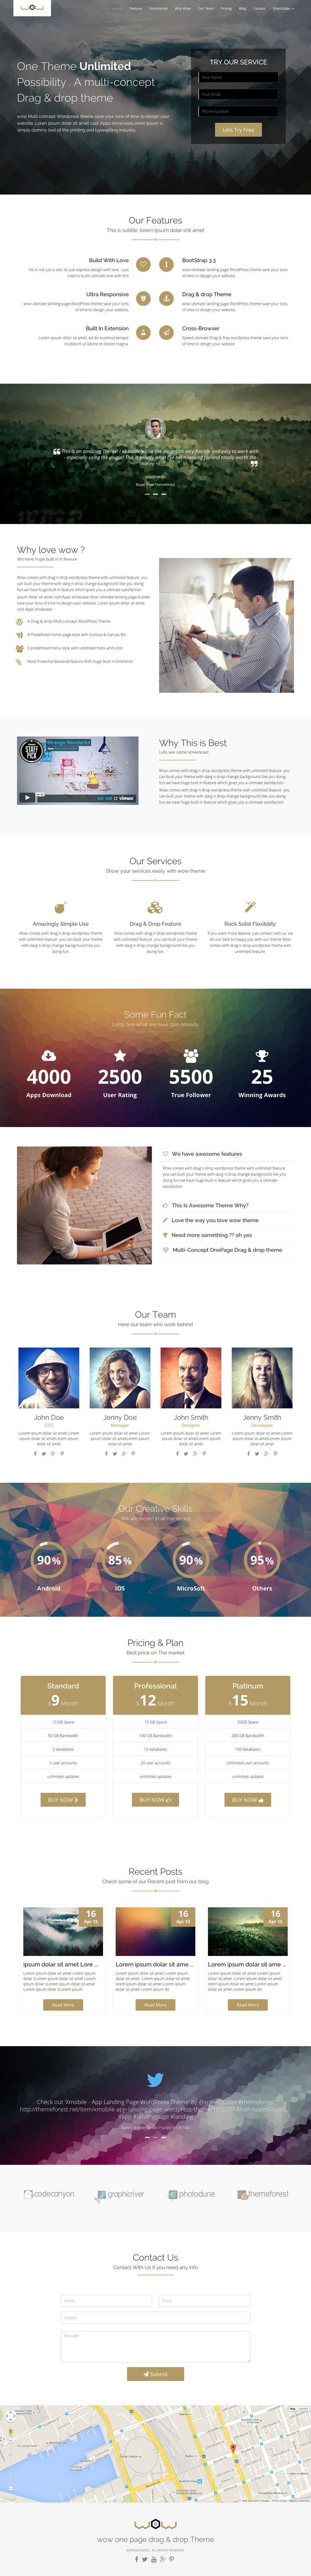 'Wow' is a multi-purpose One Page WordPress theme by XpeedStudio. The theme comes with 15 different demos showcasing their options for portfolios, landing pages, events, apps and even WooCommerce. This screenshot below features the header option I quite liked for a landing page that tries to capture user details at the very beginning in a form - a classic landing page.  The theme comes packed with a lot, the main being the popular Visual Composer Drag-n-Drop Page Builder.